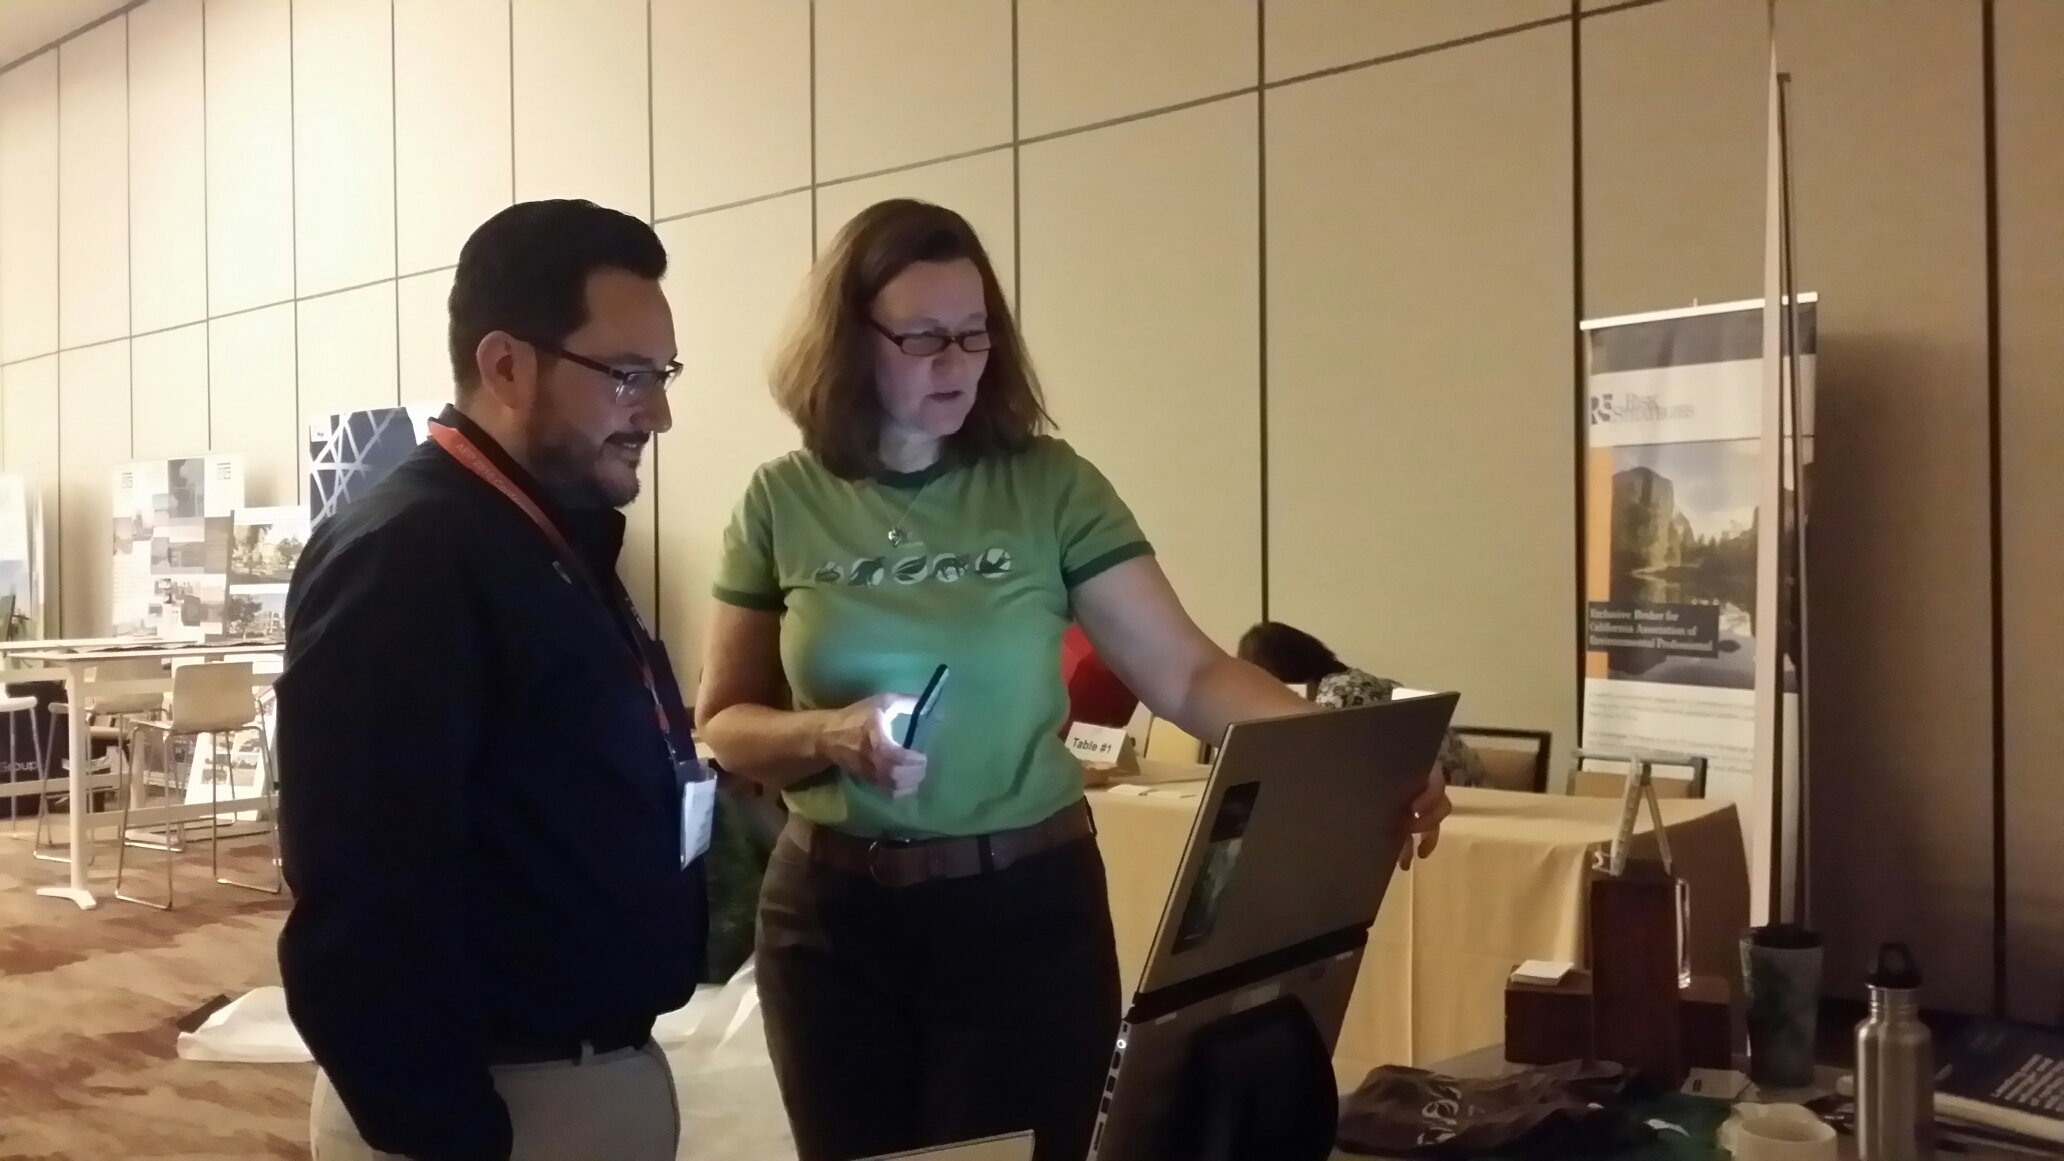 A woman and a man are standing and  looking at a laptop computer screen